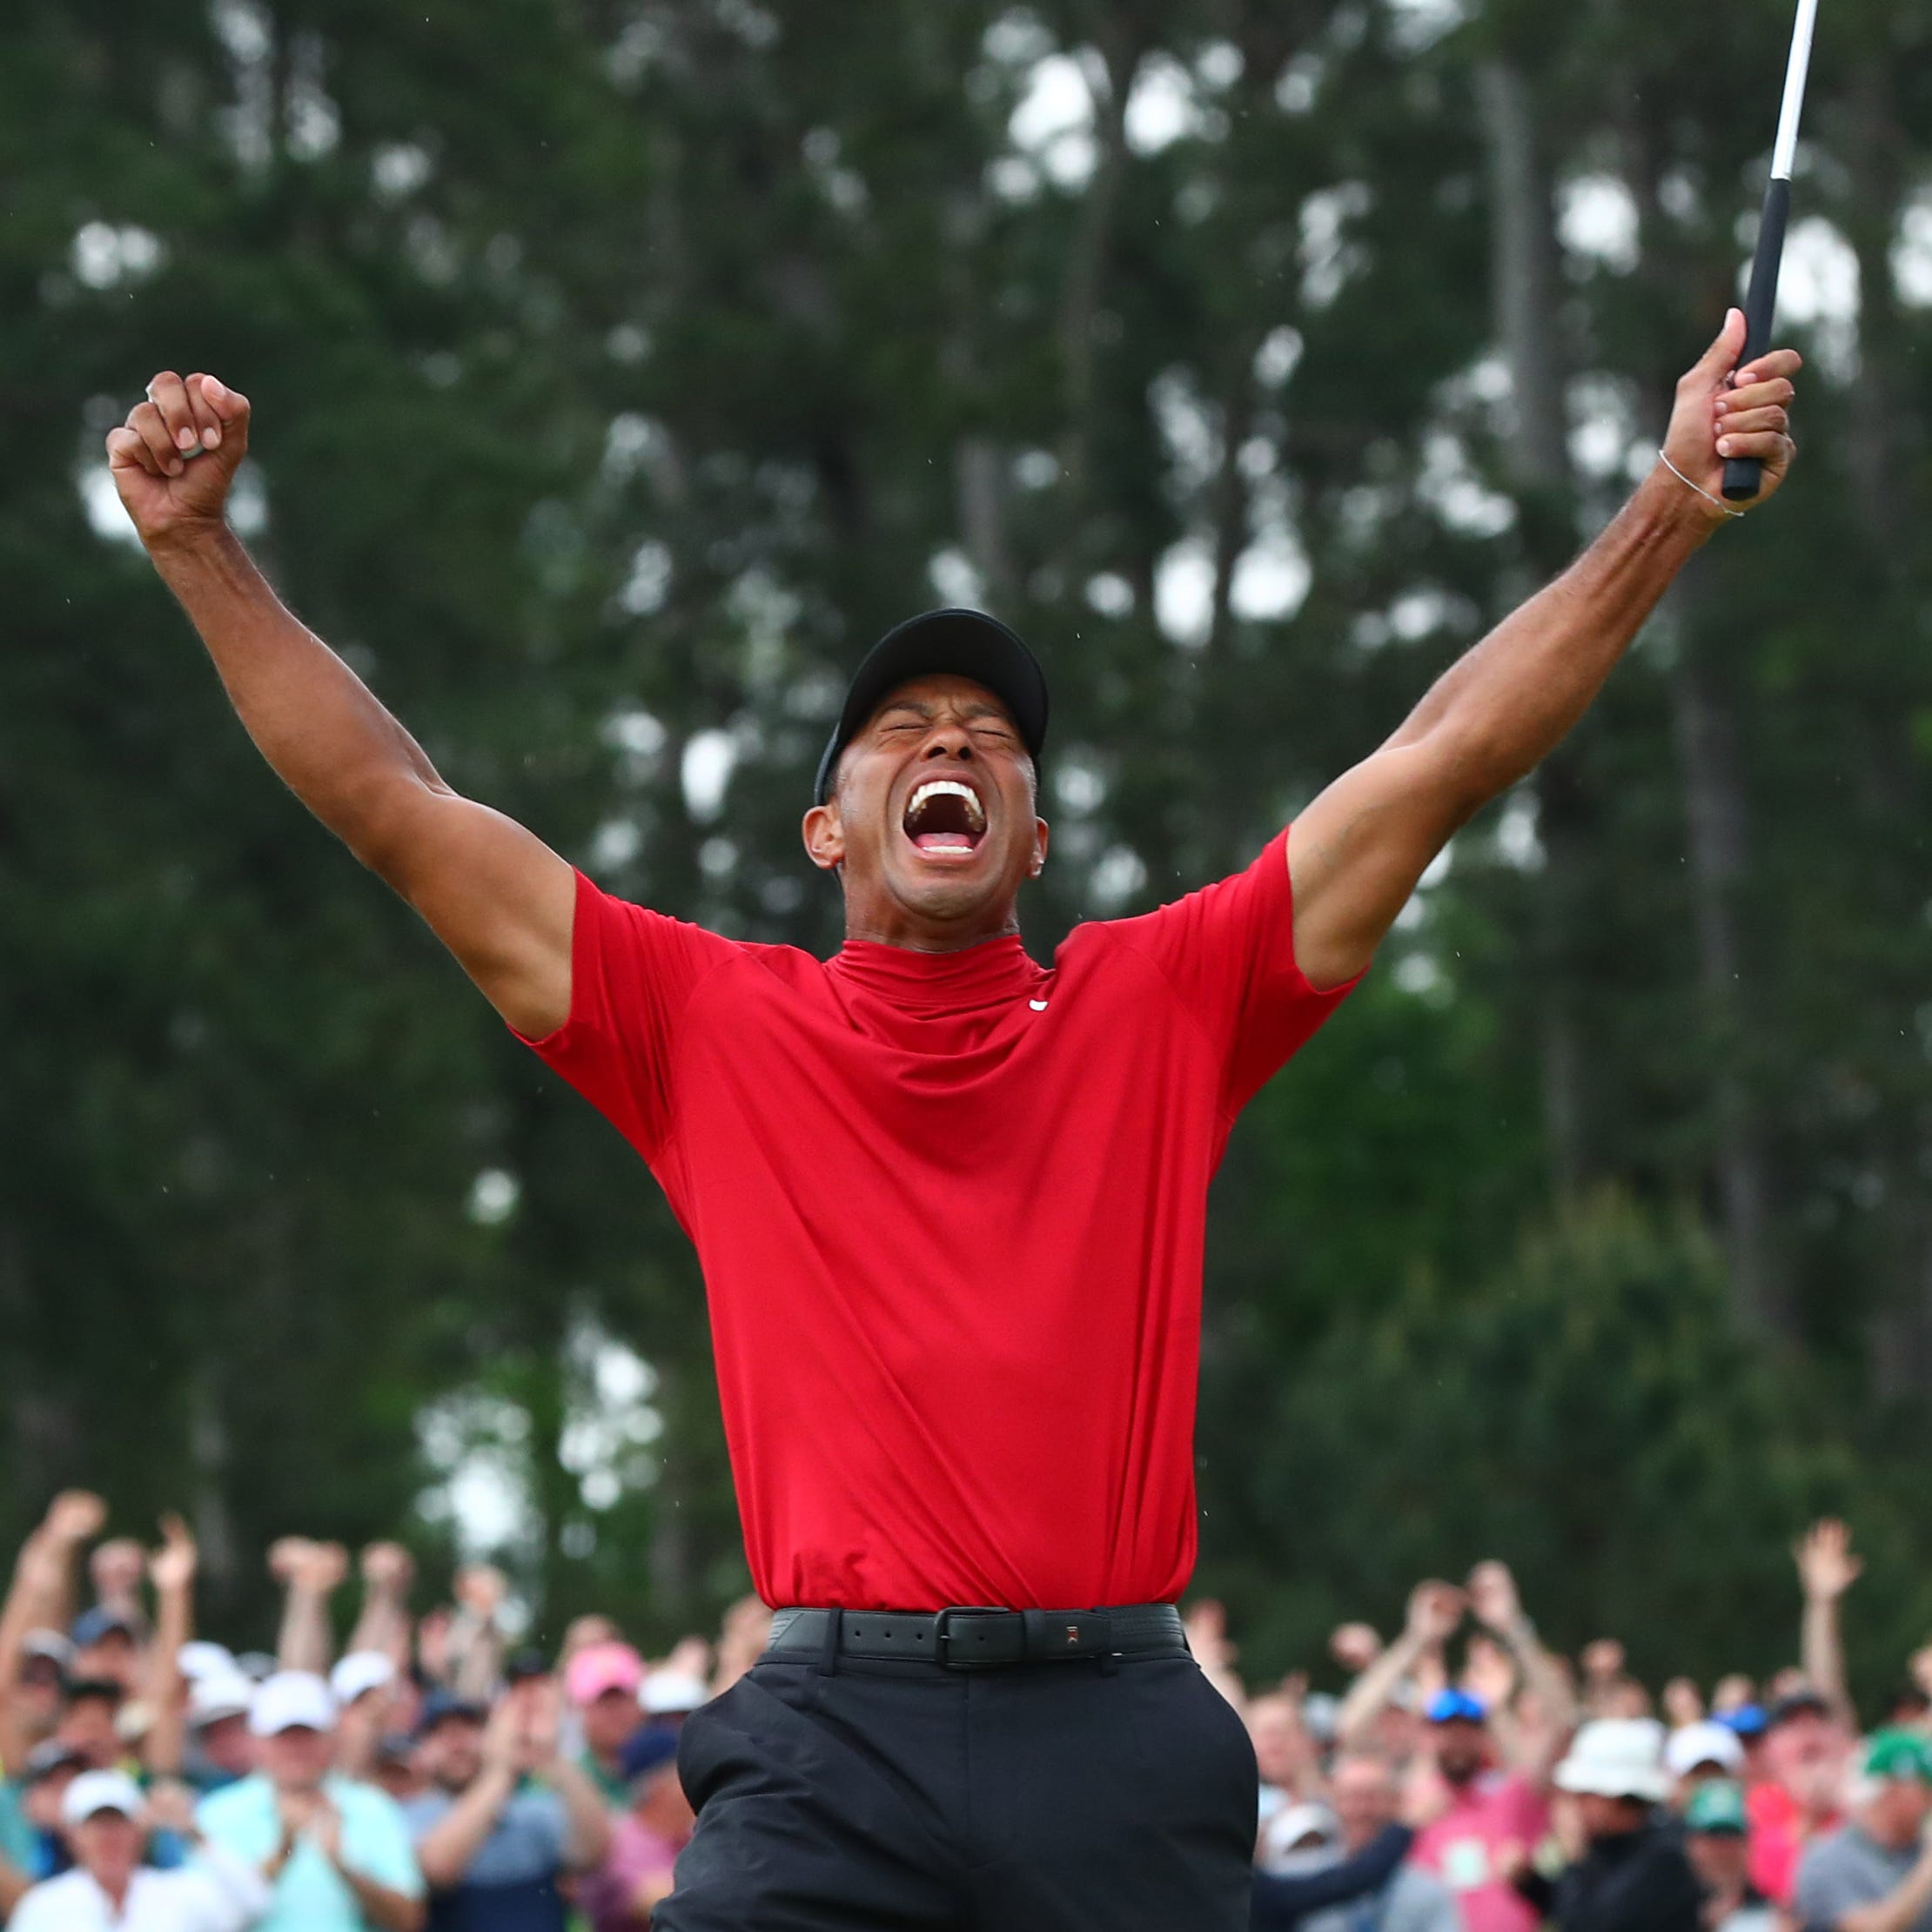 In Mississippi, Georgia and Detroit, I watch Tiger Woods' victory bring Americans together